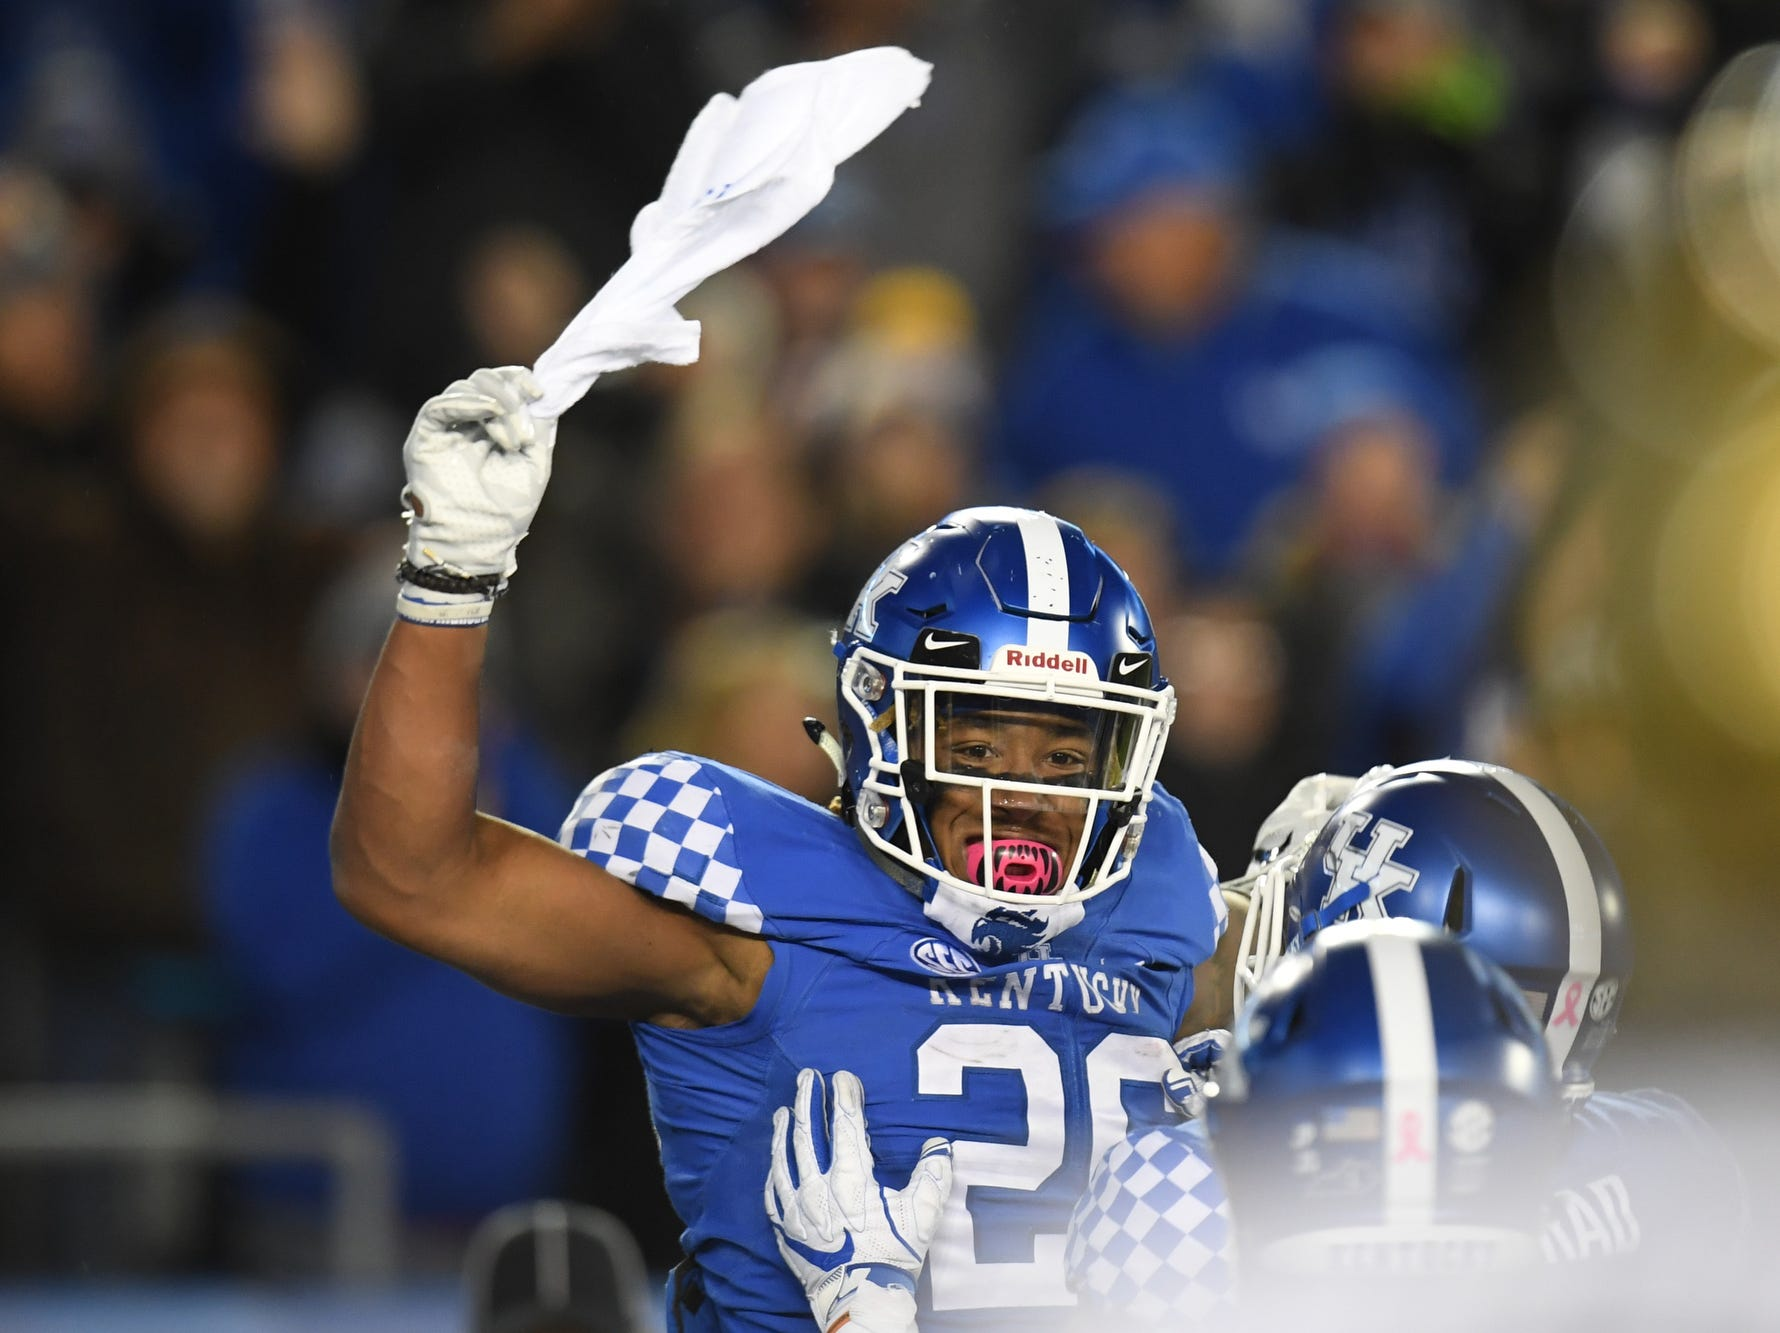 UK RB Benny Snell, Jr. celebrates a touchdown run during the University of Kentucky football game against Vanderbilt at Kroger Field in Lexington, Kentucky on Saturday, October 20, 2018.